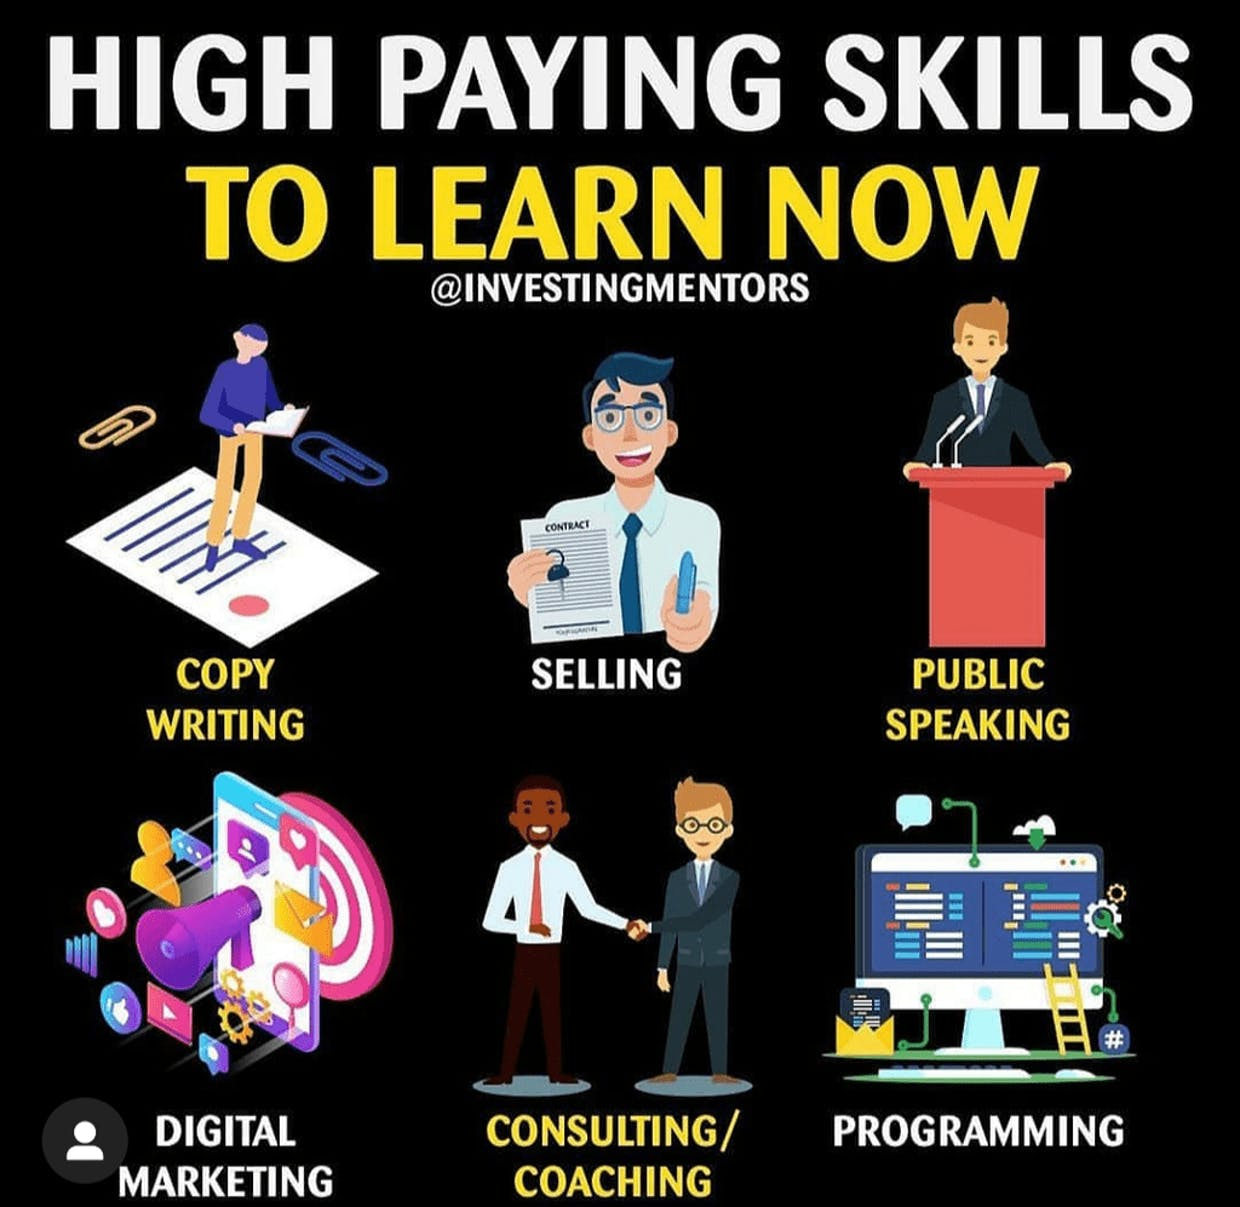 Skills an entrepreneur should develop in this era of technology.